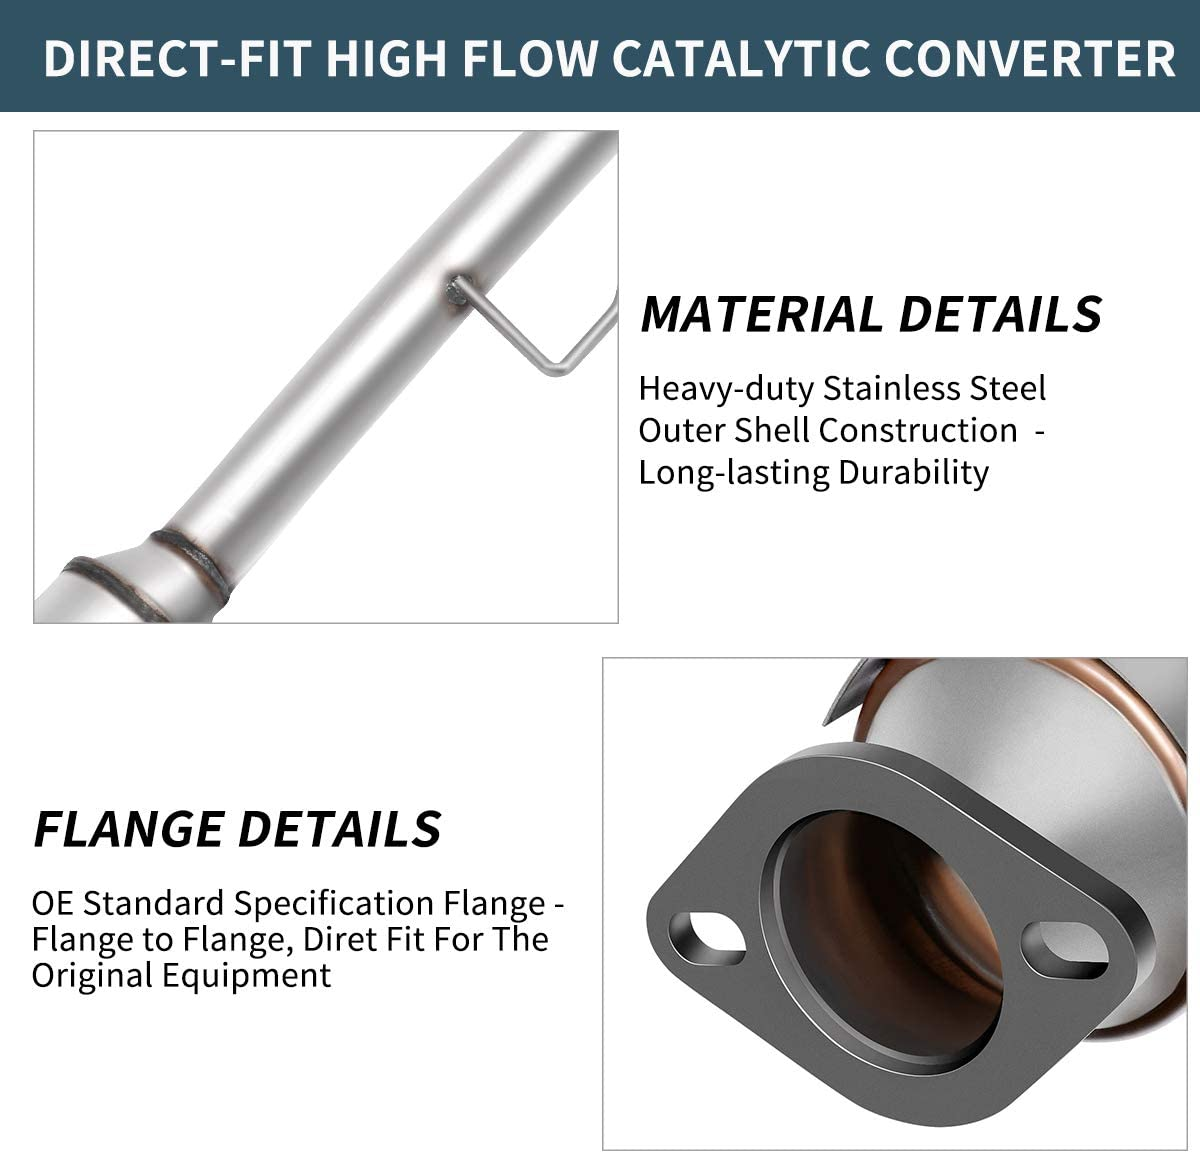 Direct-Fit Stainless Steel High Flow Series Maxiii Catalytic Converter for 2002-2006 Toyota Camry//Solara 2.4L EPA Approved